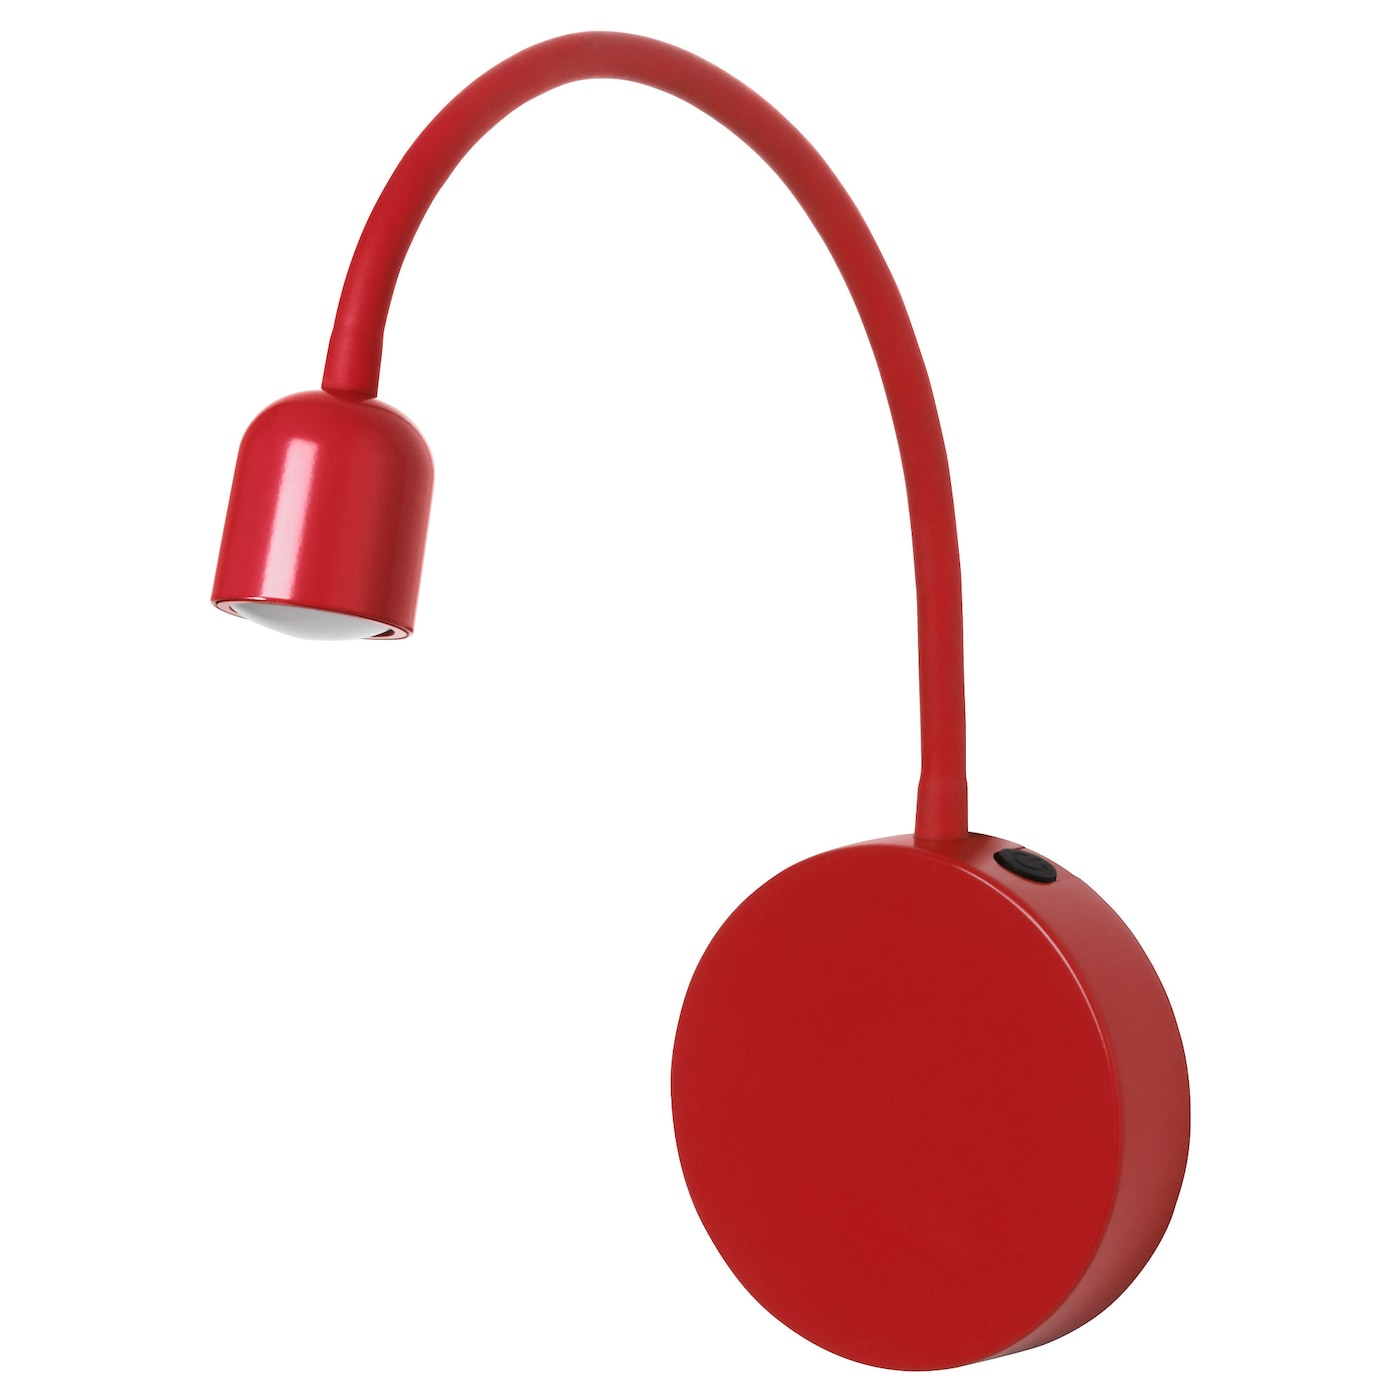 Wall Lamps Battery Operated : BLaVIK LED wall lamp Battery-operated red - IKEA